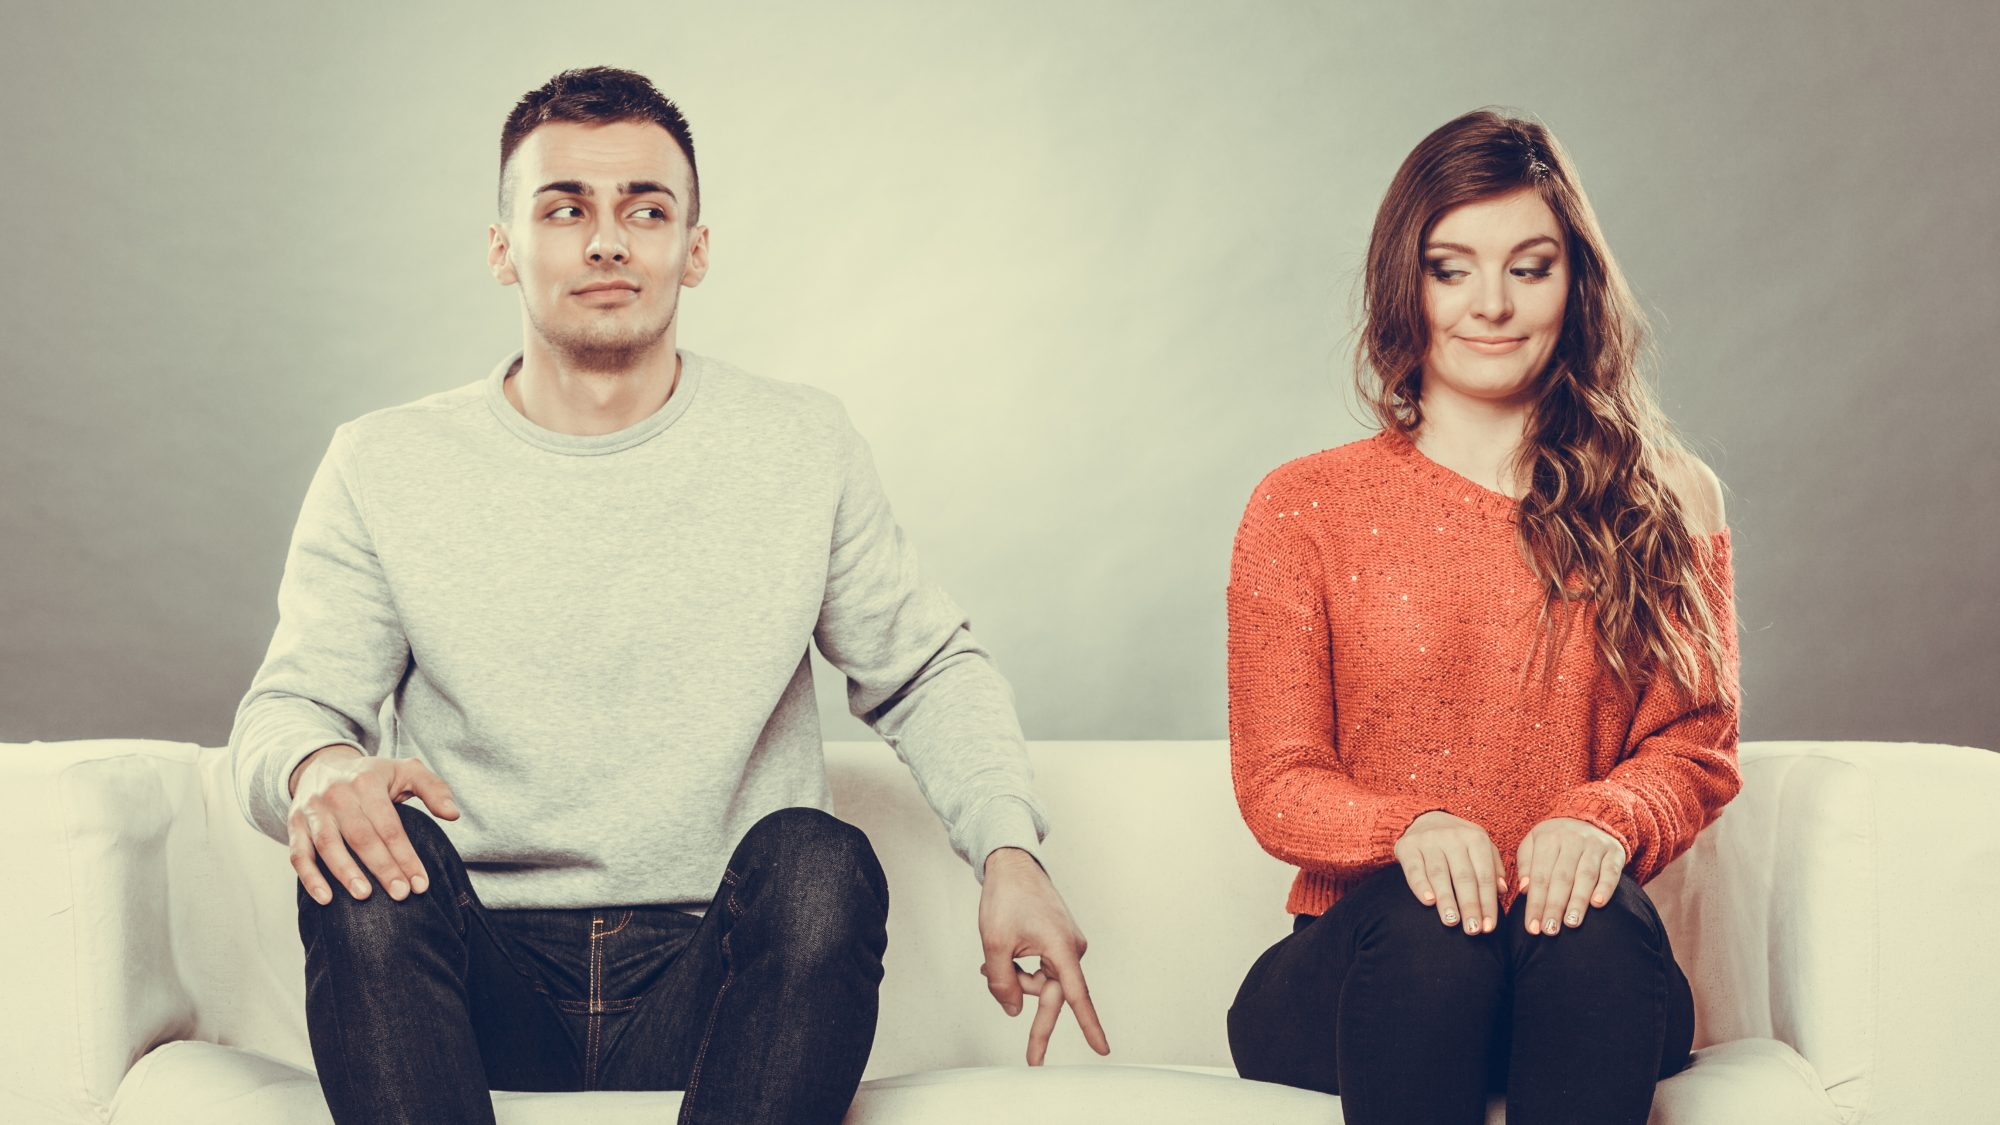 Picture of Single People Sitting on Sofa